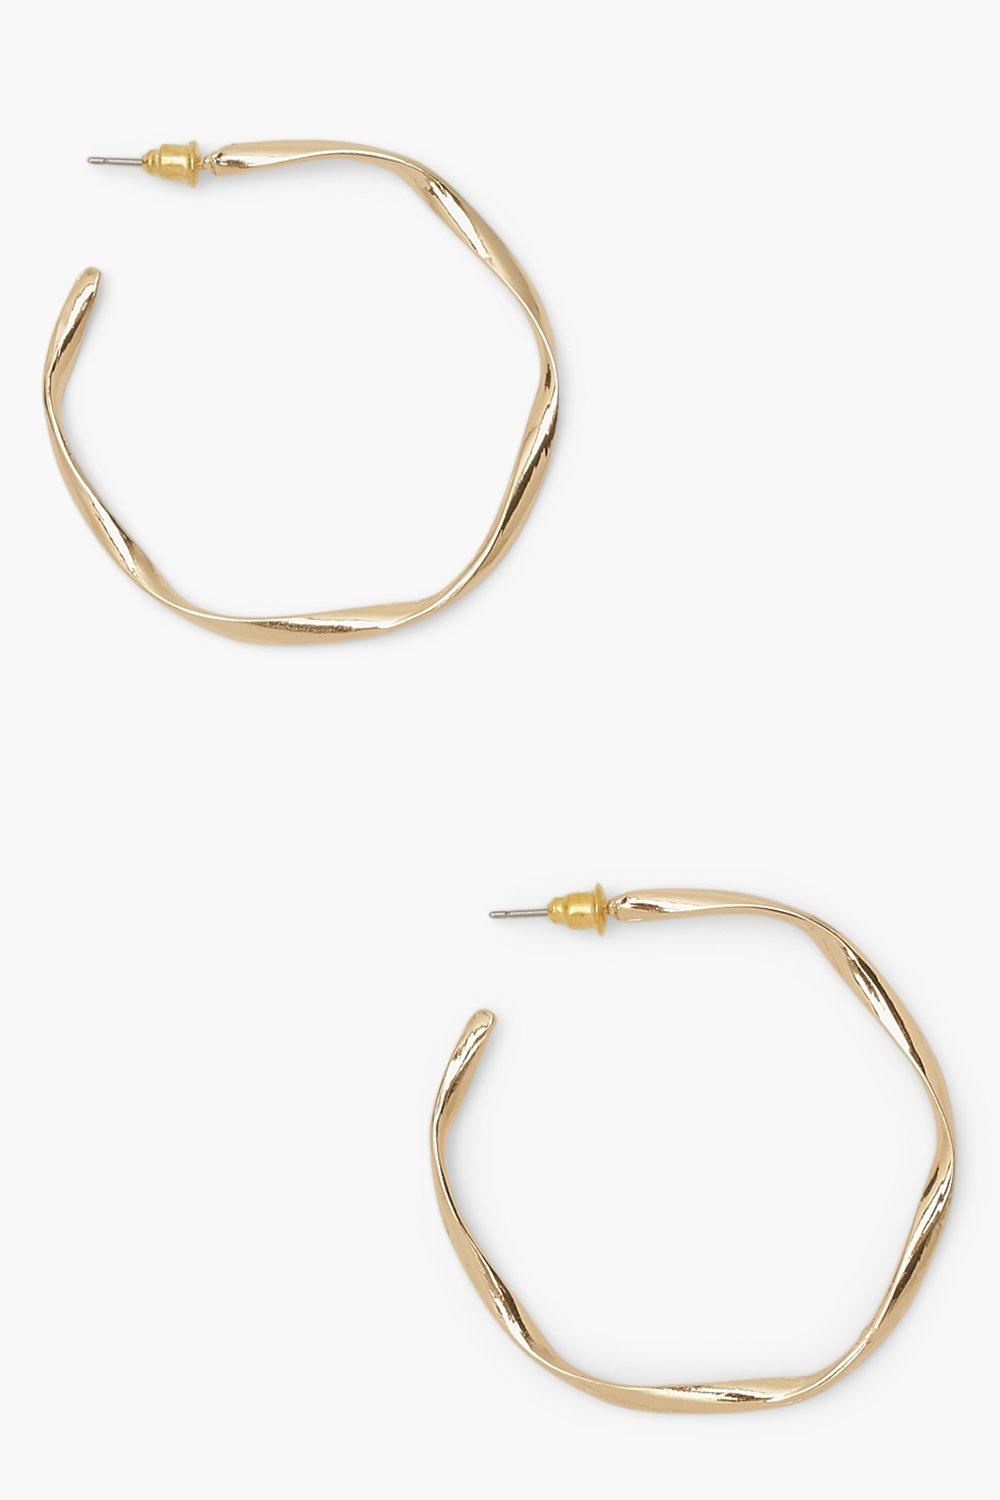 Boohoo Loose Twist Hammered Hoop Earrings